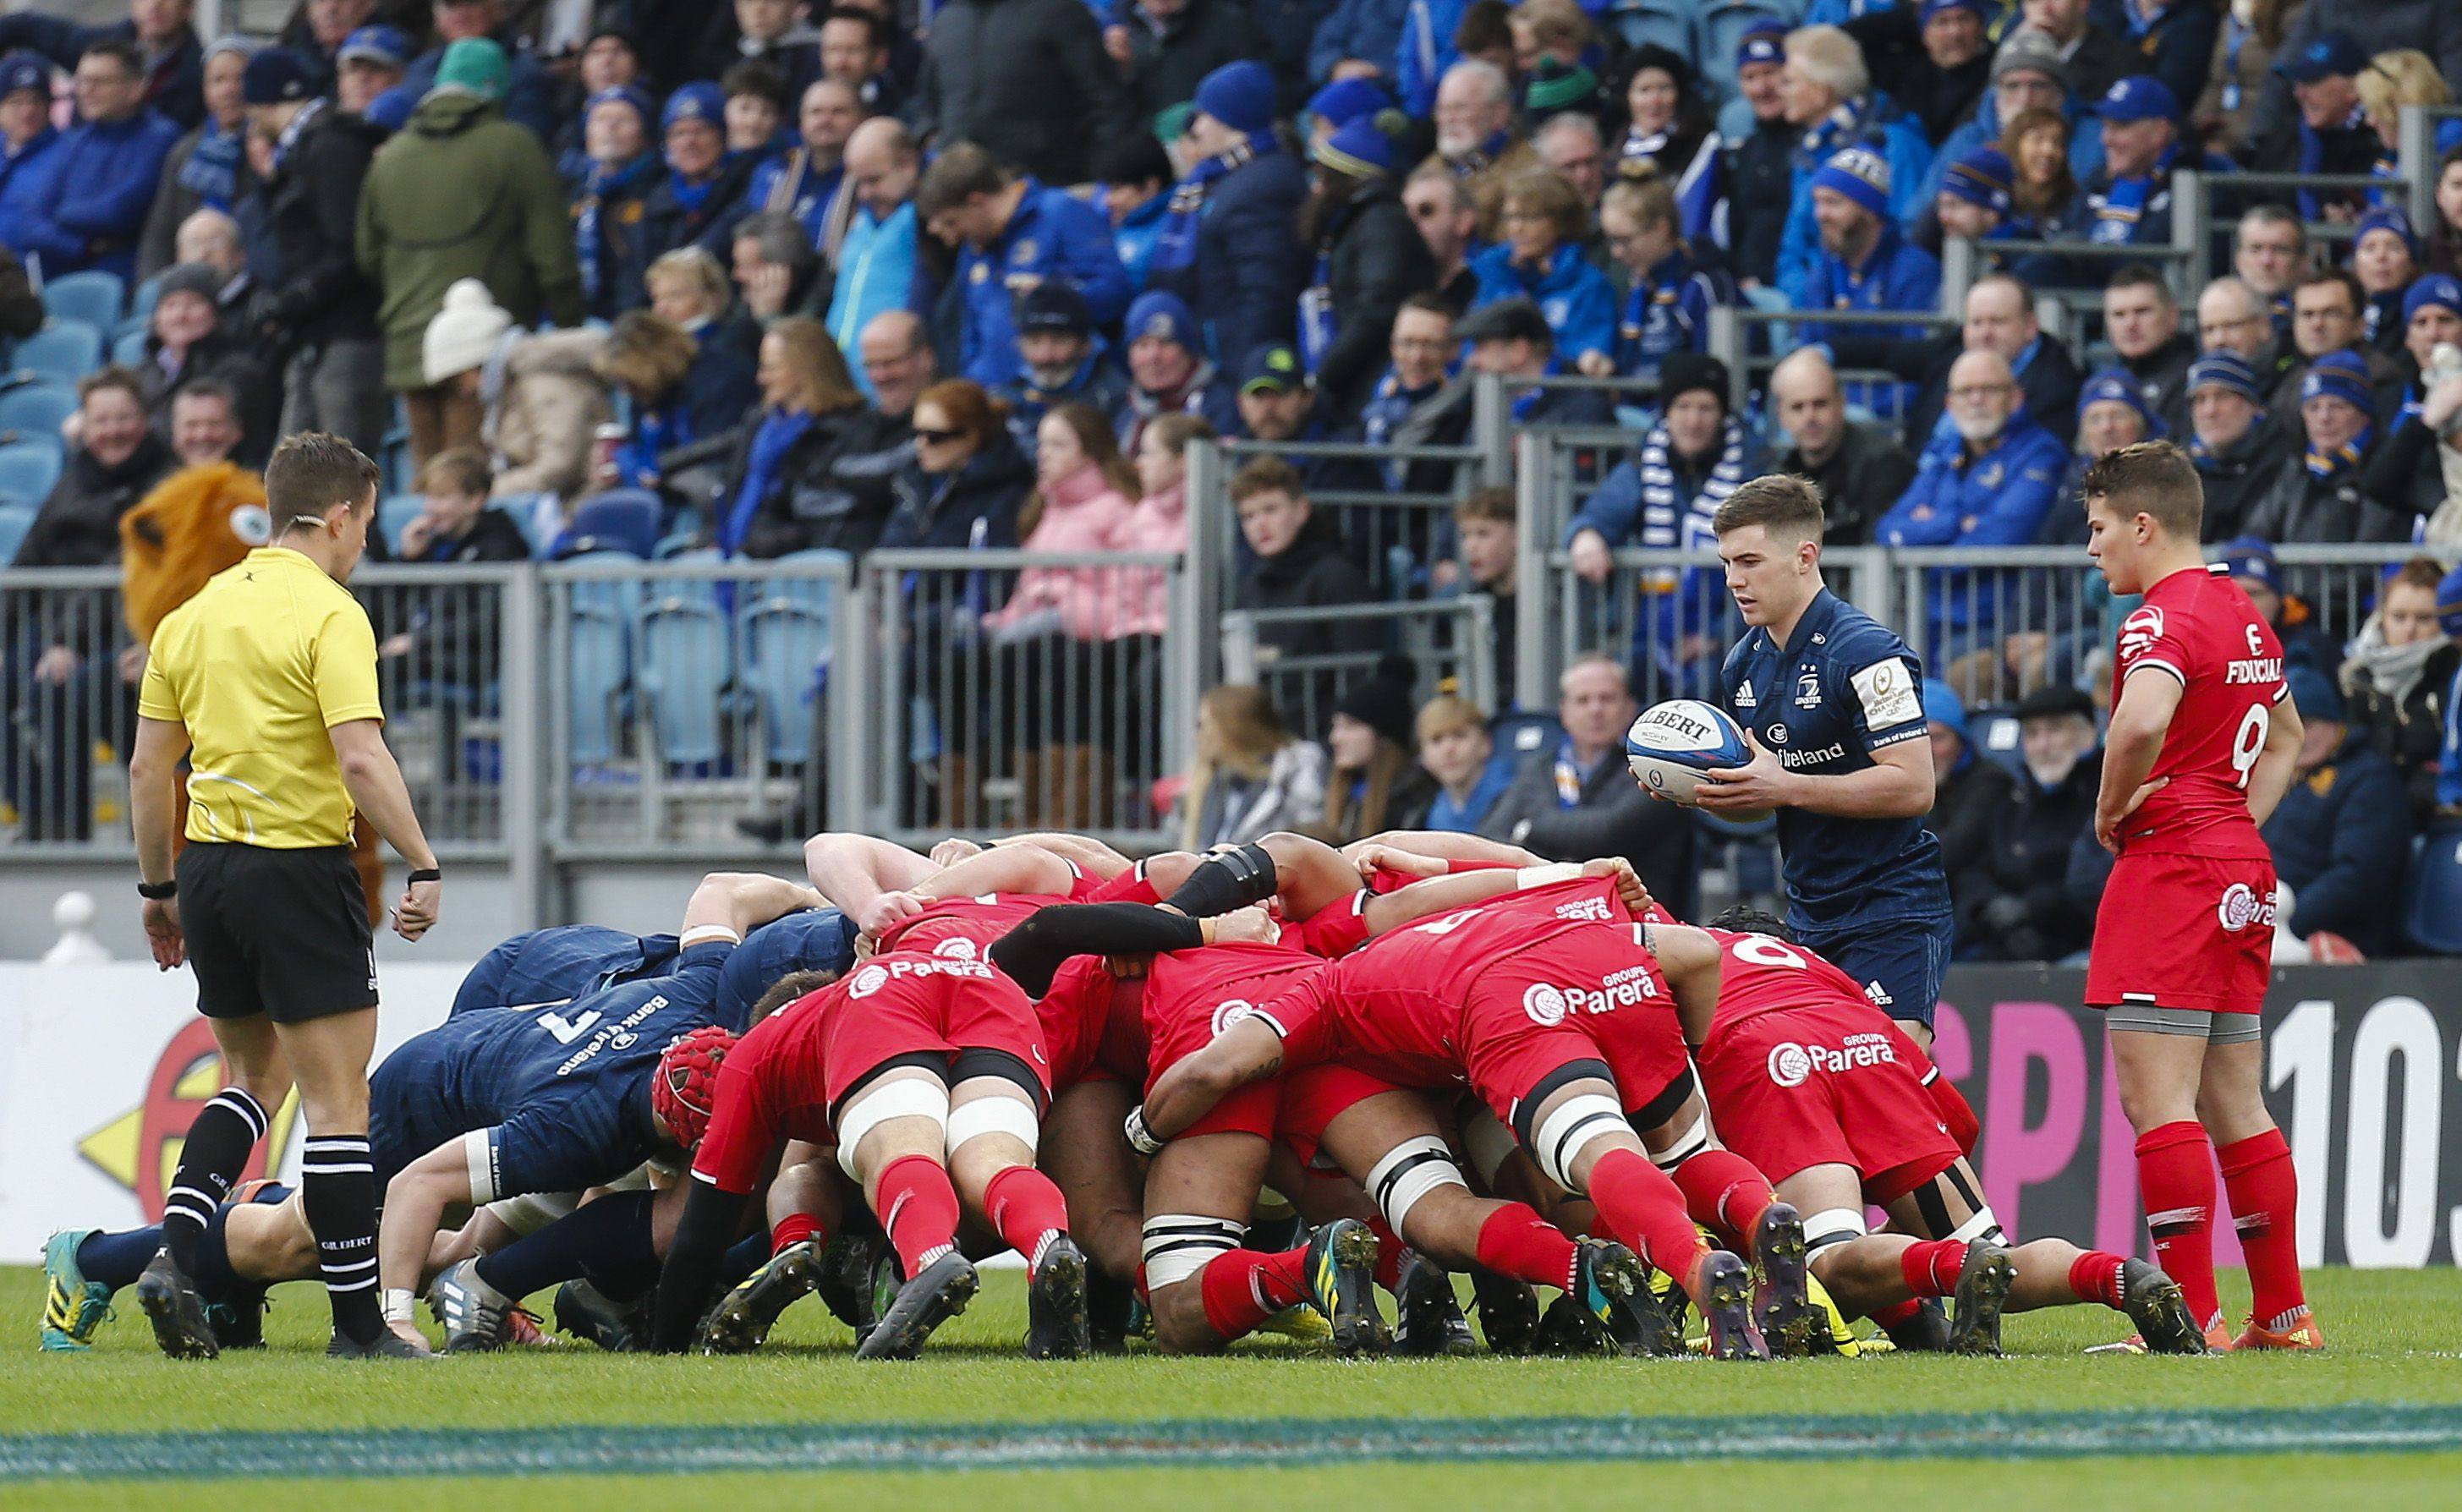 Rugby - Coupes d'Europe - Hart : «Le Leinster va essayer d'enfermer Toulouse»